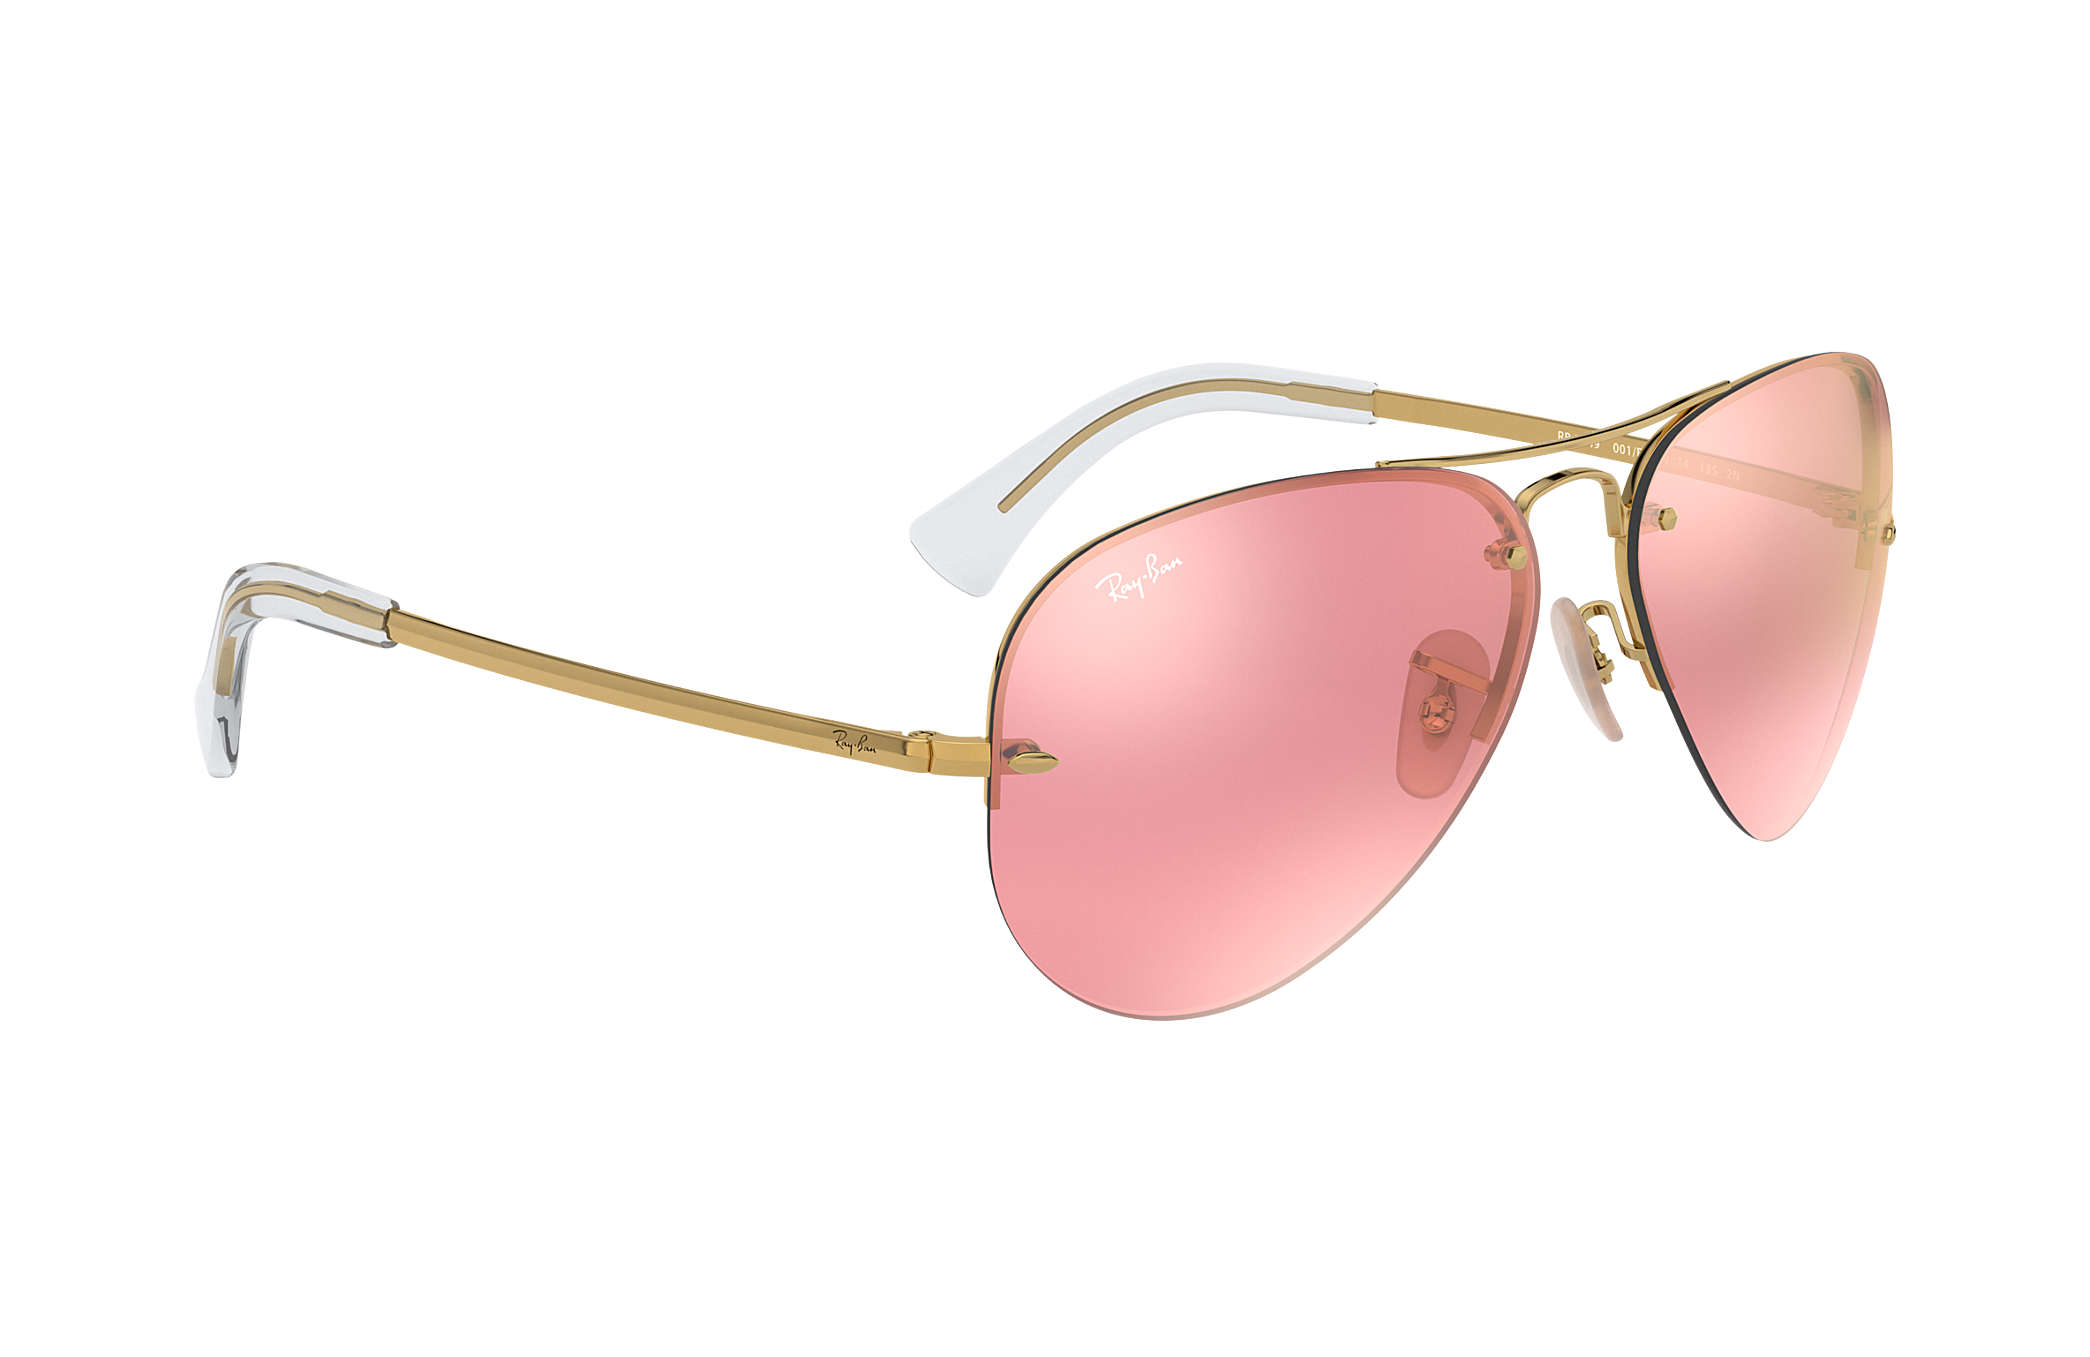 74a668260f3 Ray-Ban RB3449 Gold - Metal - Pink Lenses - 0RB3449001 E459